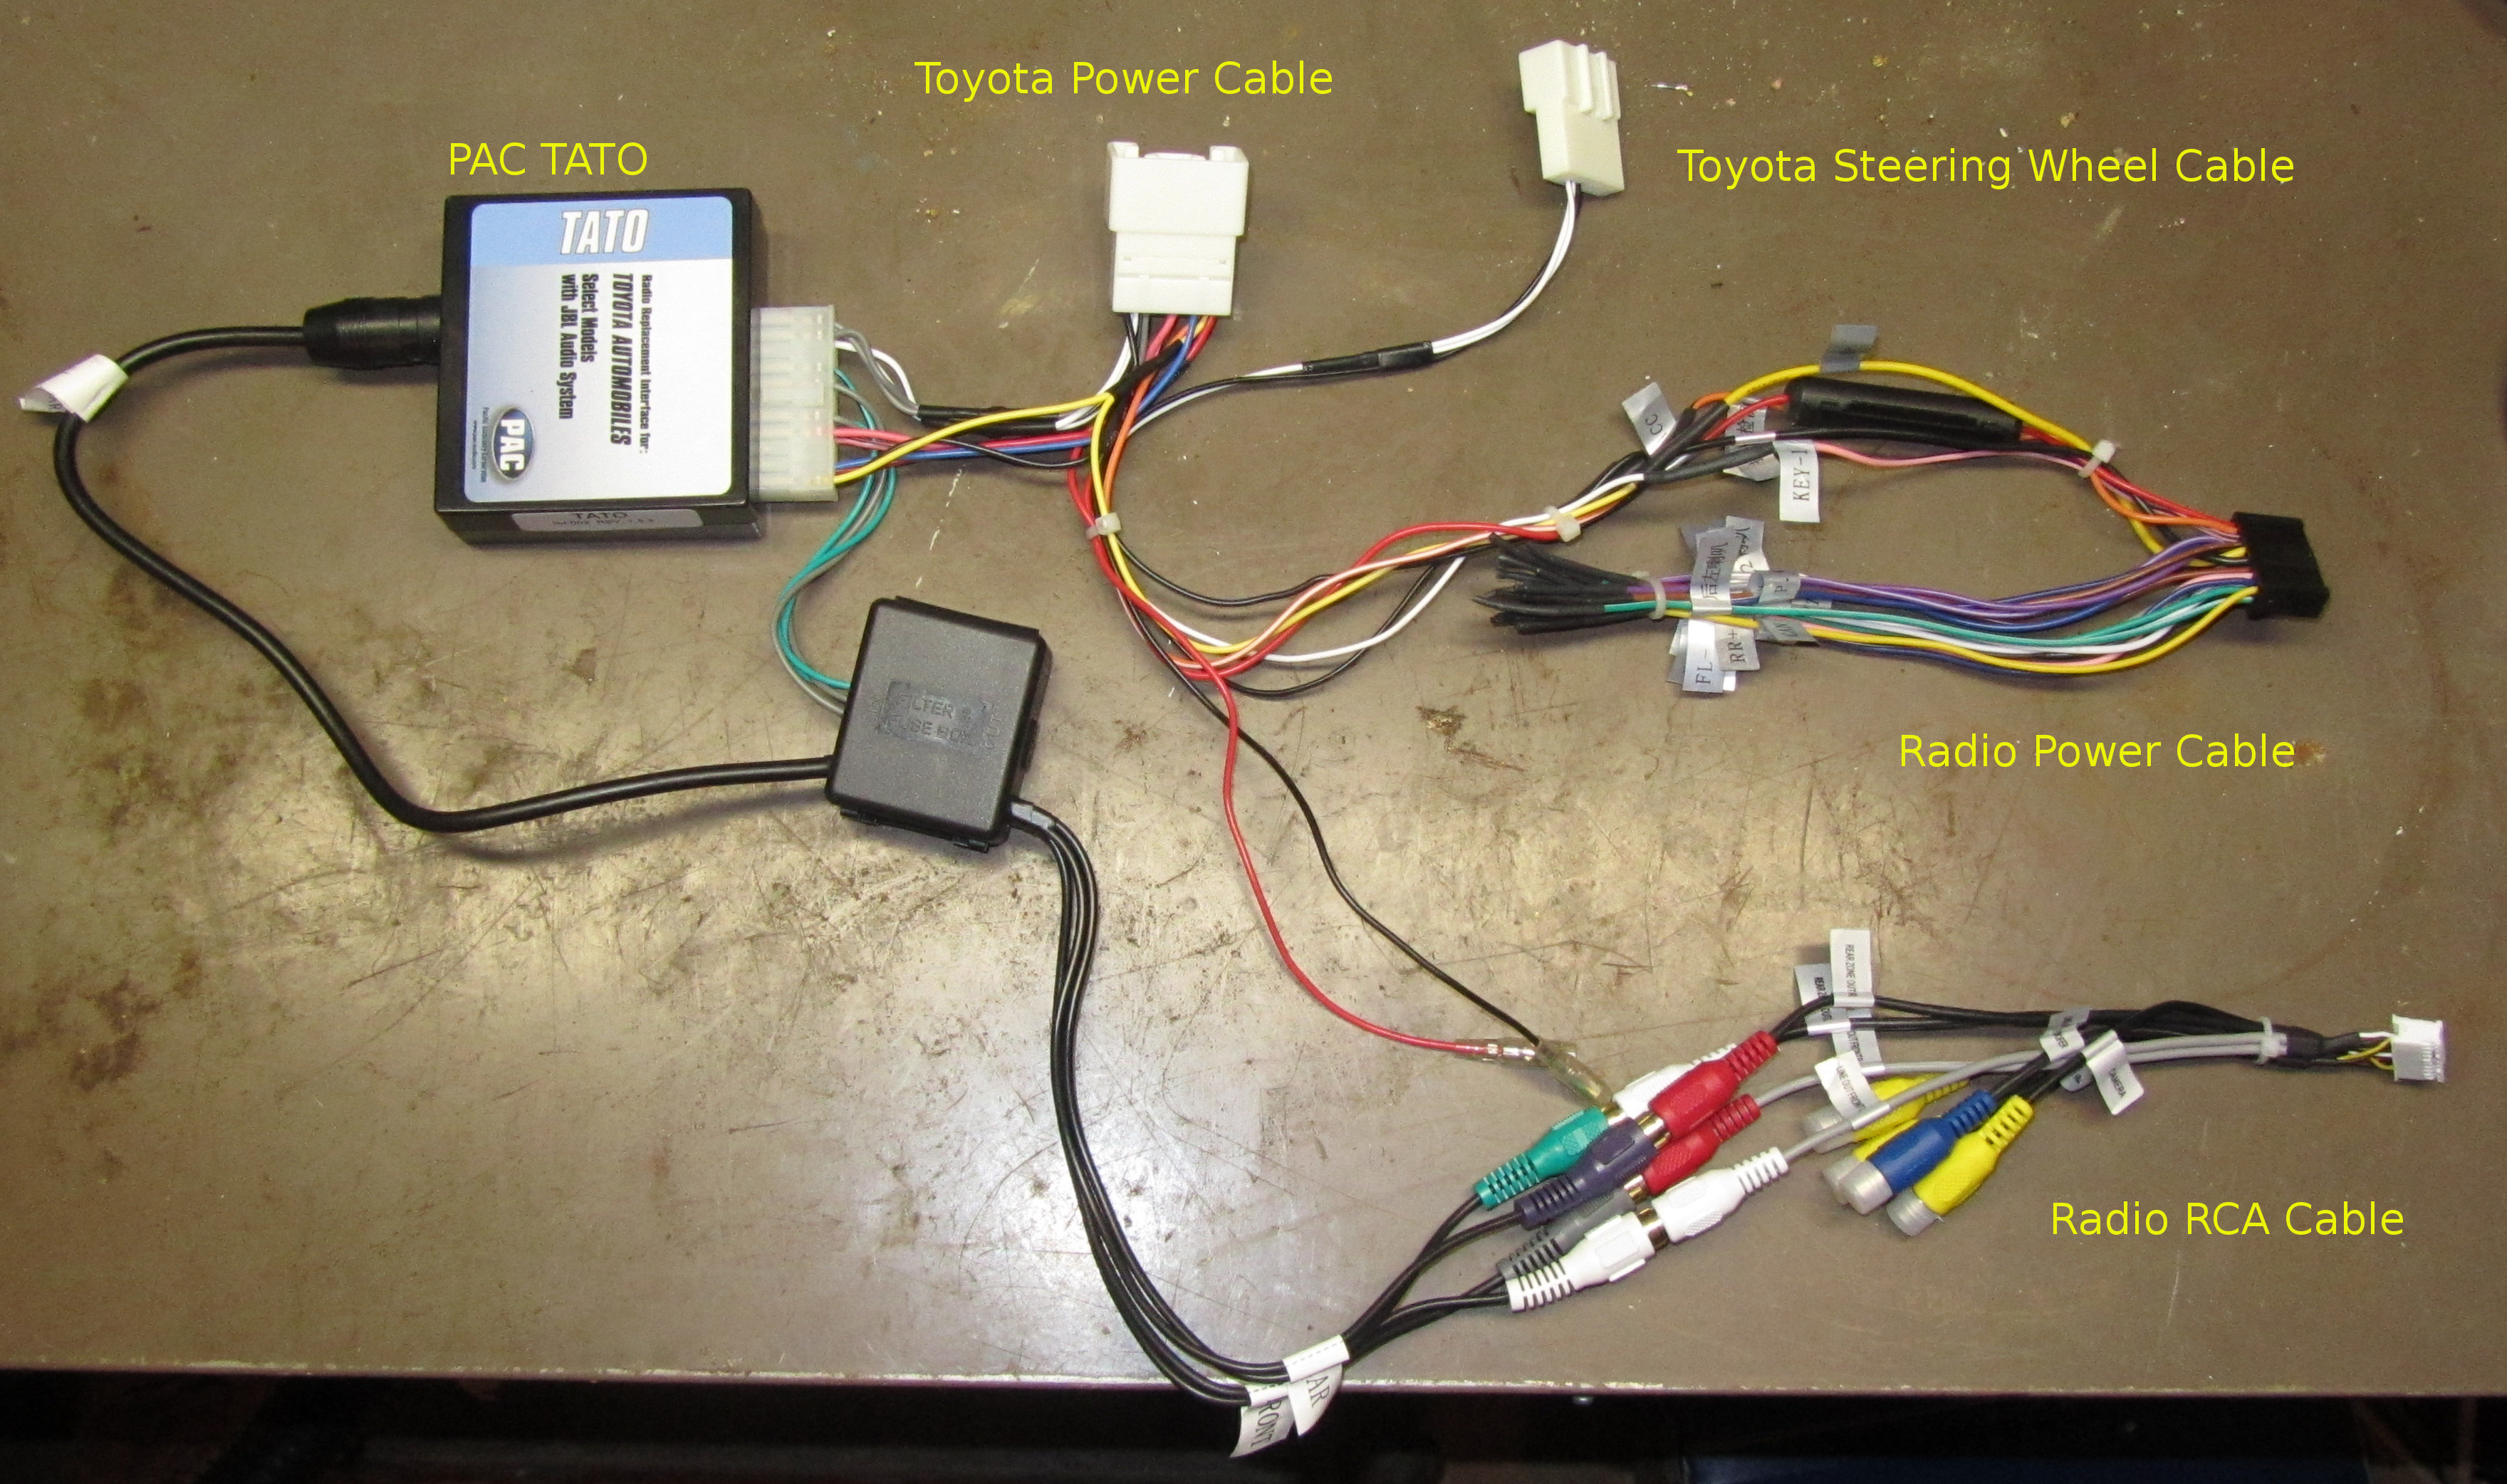 rav4 harness jbl jbl wiring harness at panicattacktreatment.co